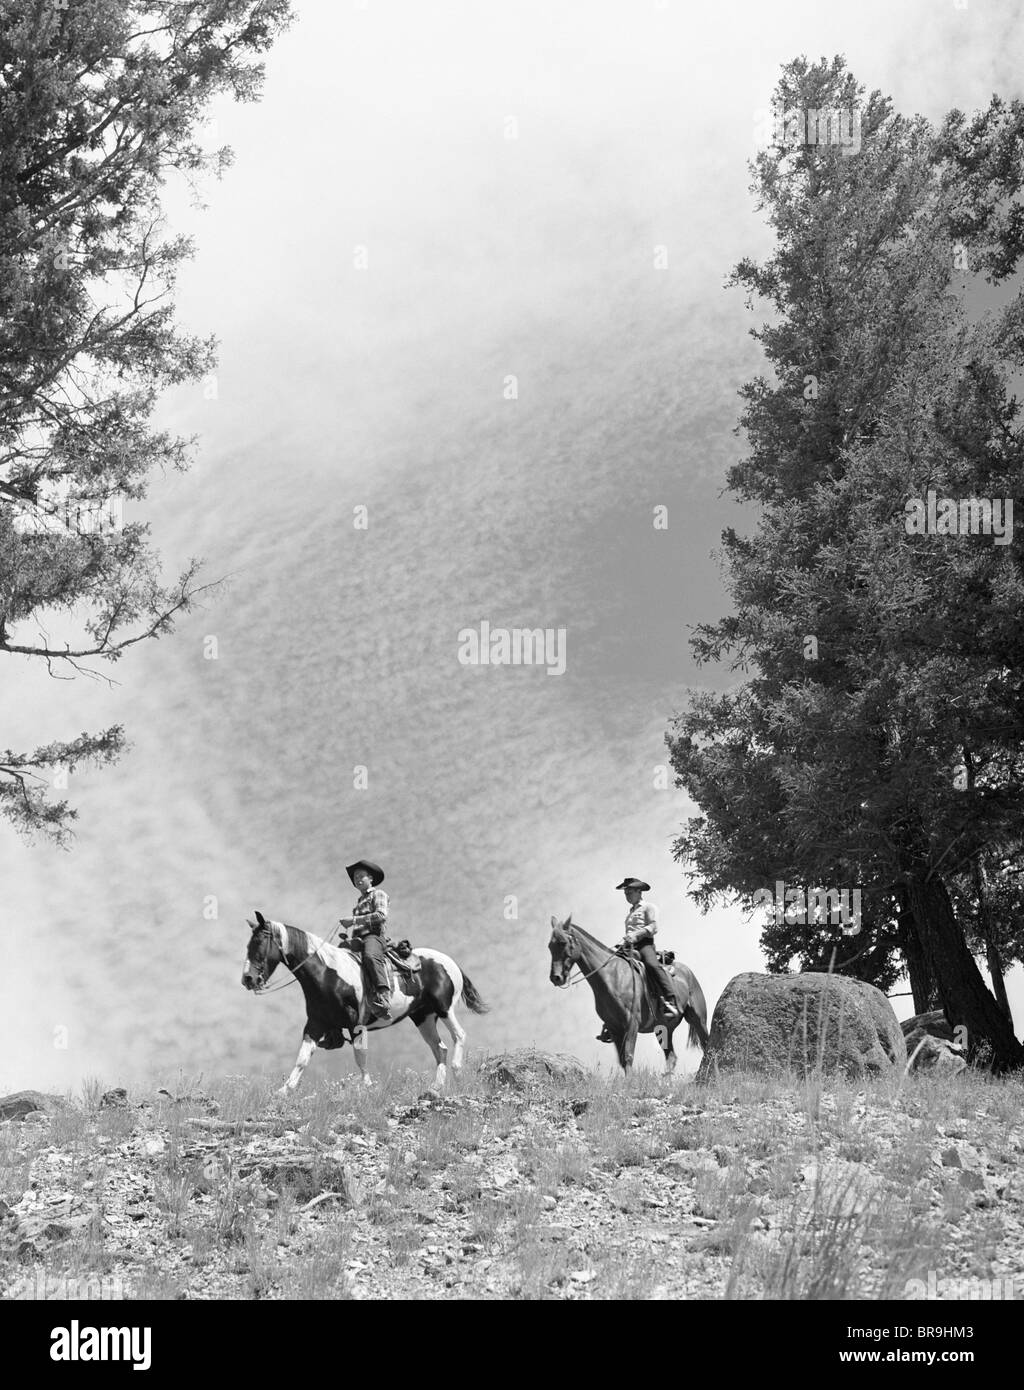 1950s 1960s TWO MEN ON HORSEBACK RIDING ACROSS FIELD WEARING COWBOY HATS - Stock Image